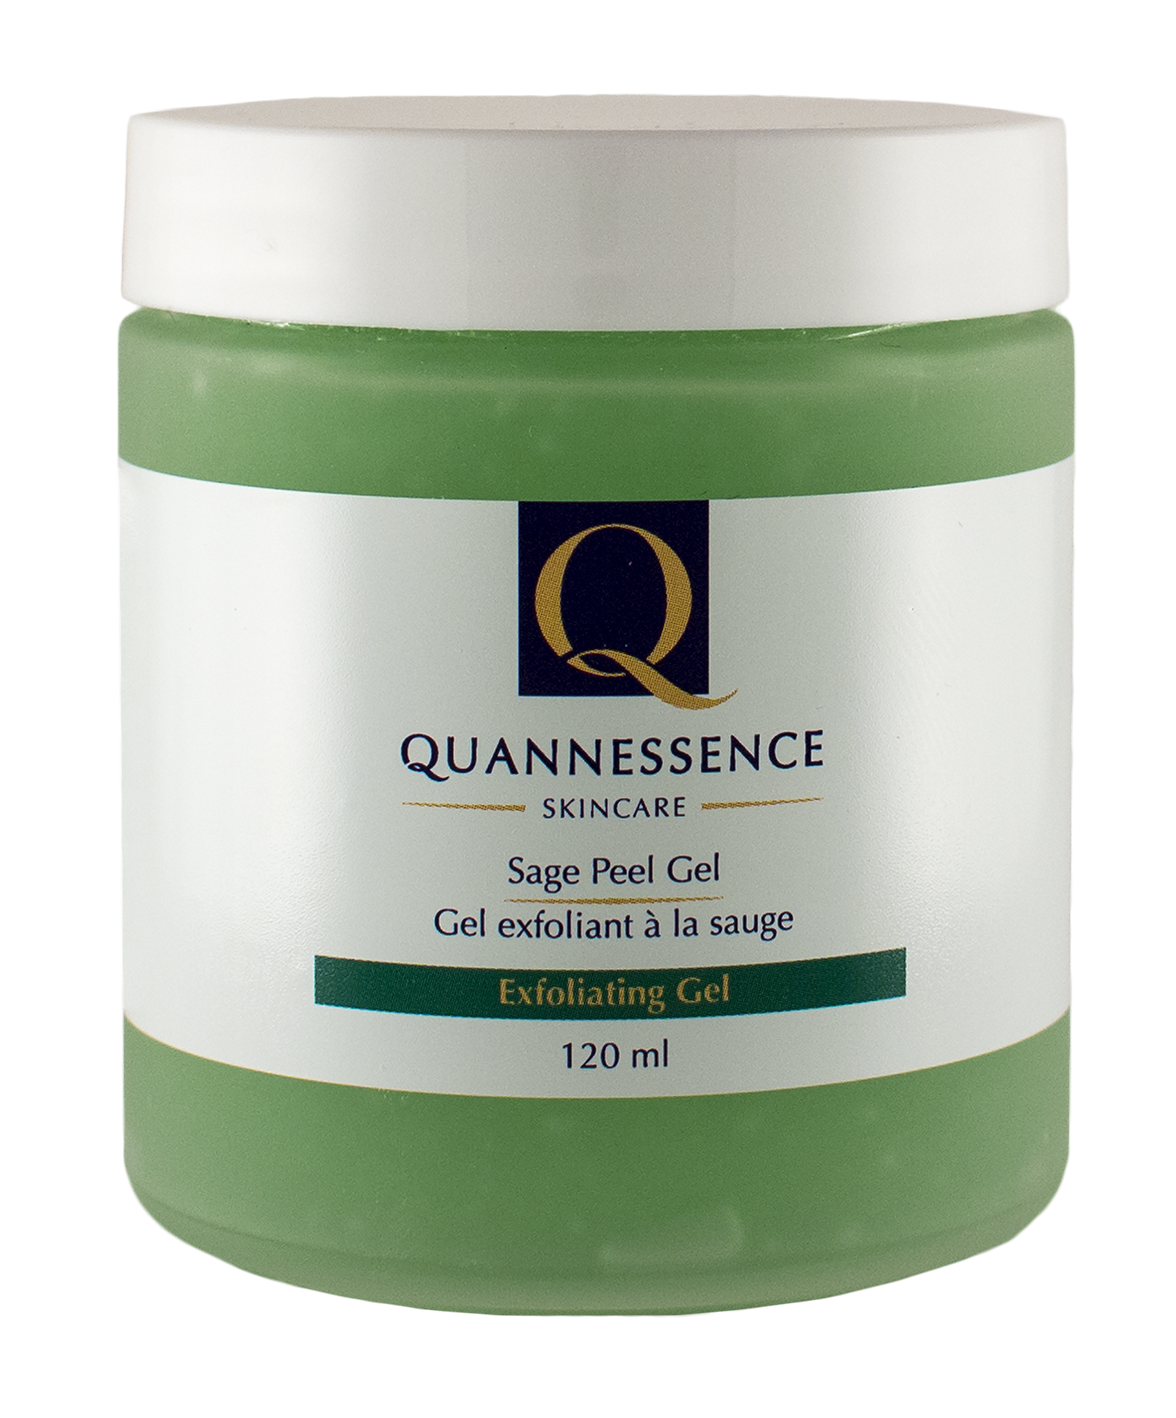 Quannessence Sage Peel Gel (120 ml)